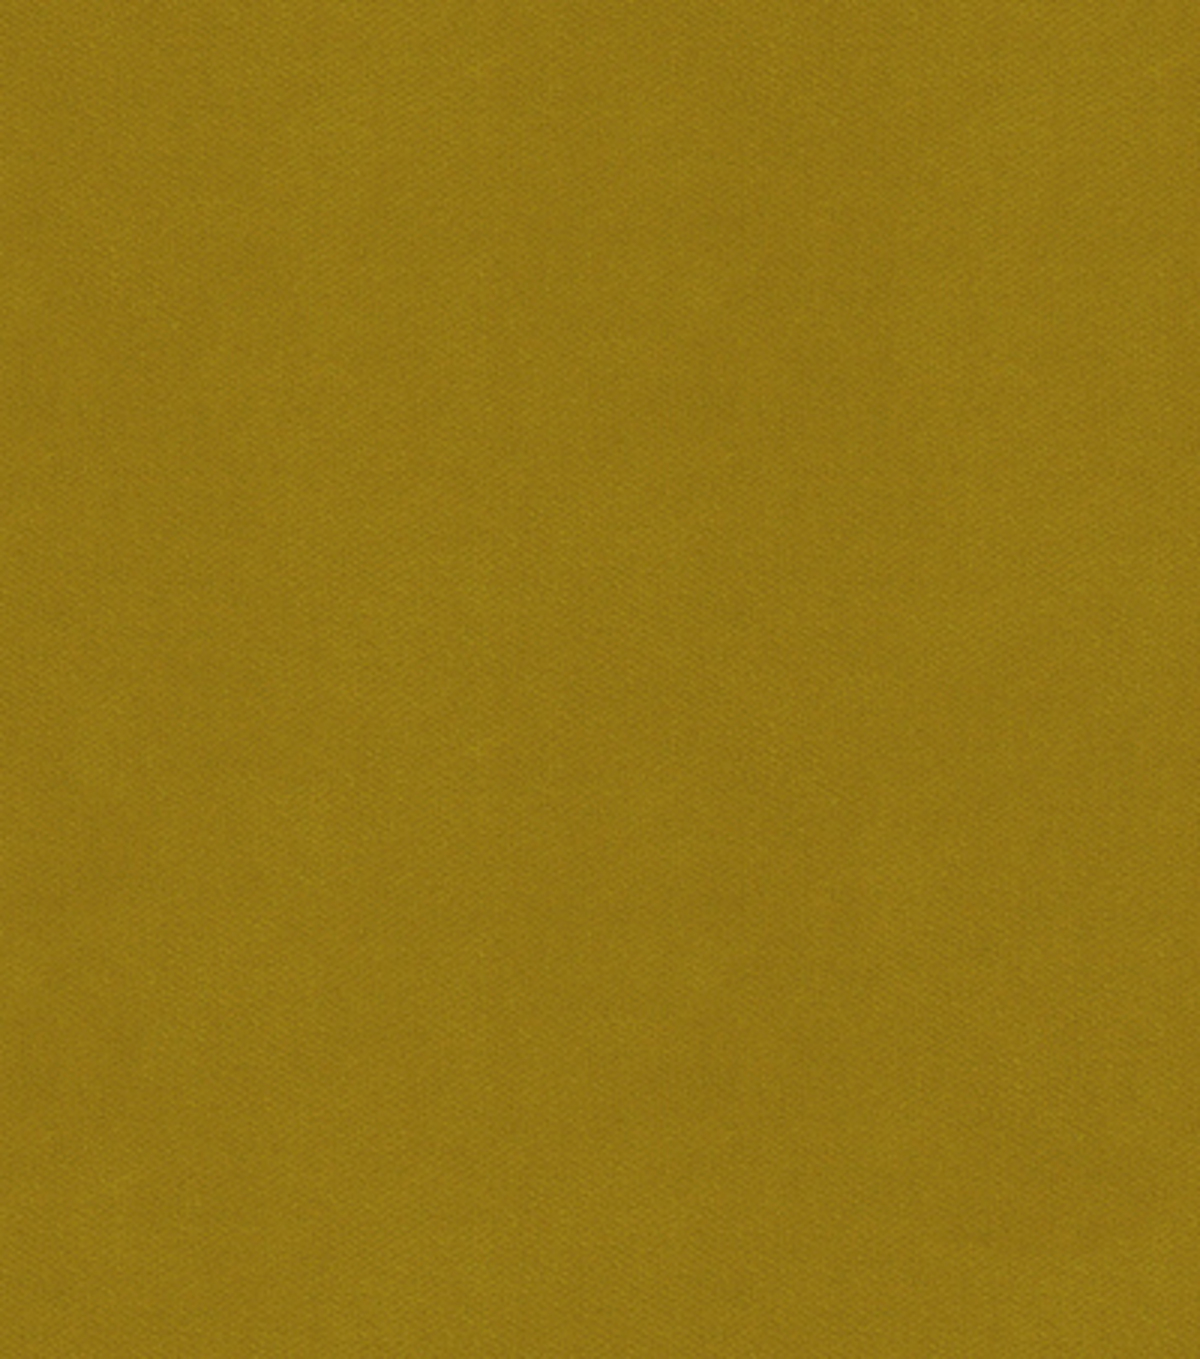 Home Decor 8\u0022x8\u0022 Fabric Swatch-Como-130-Mustard